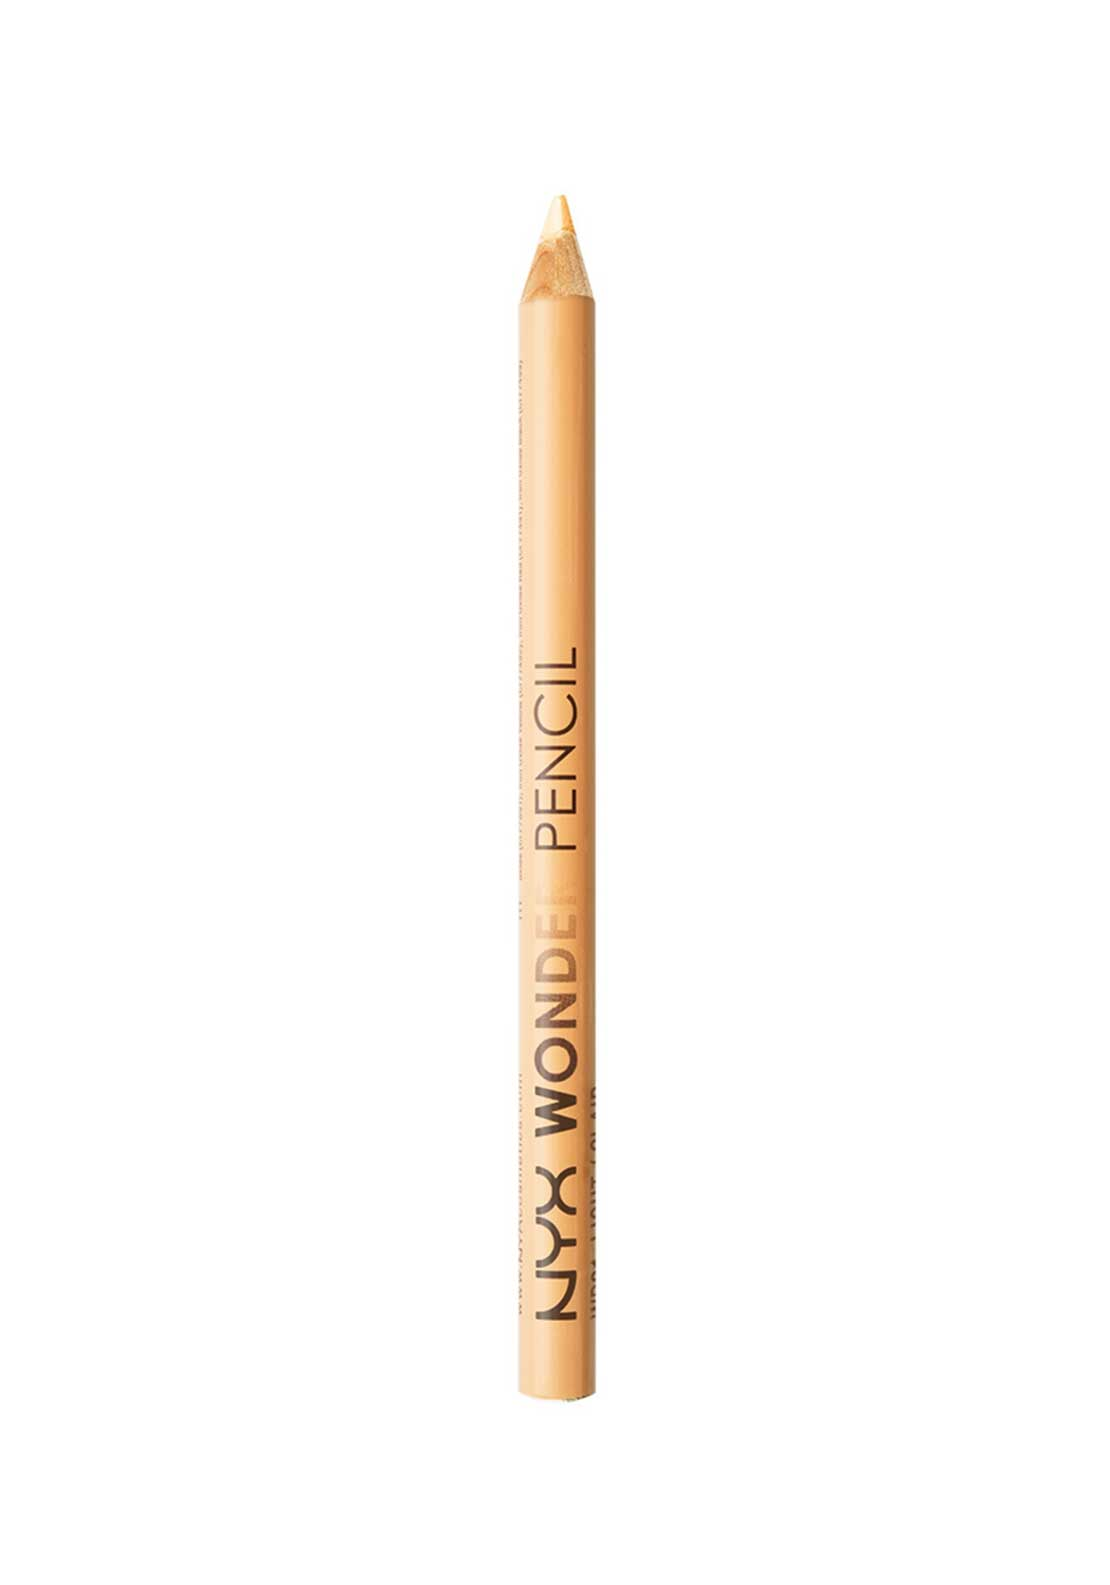 NYX Make Up Wonder Pencil, 02 Medium